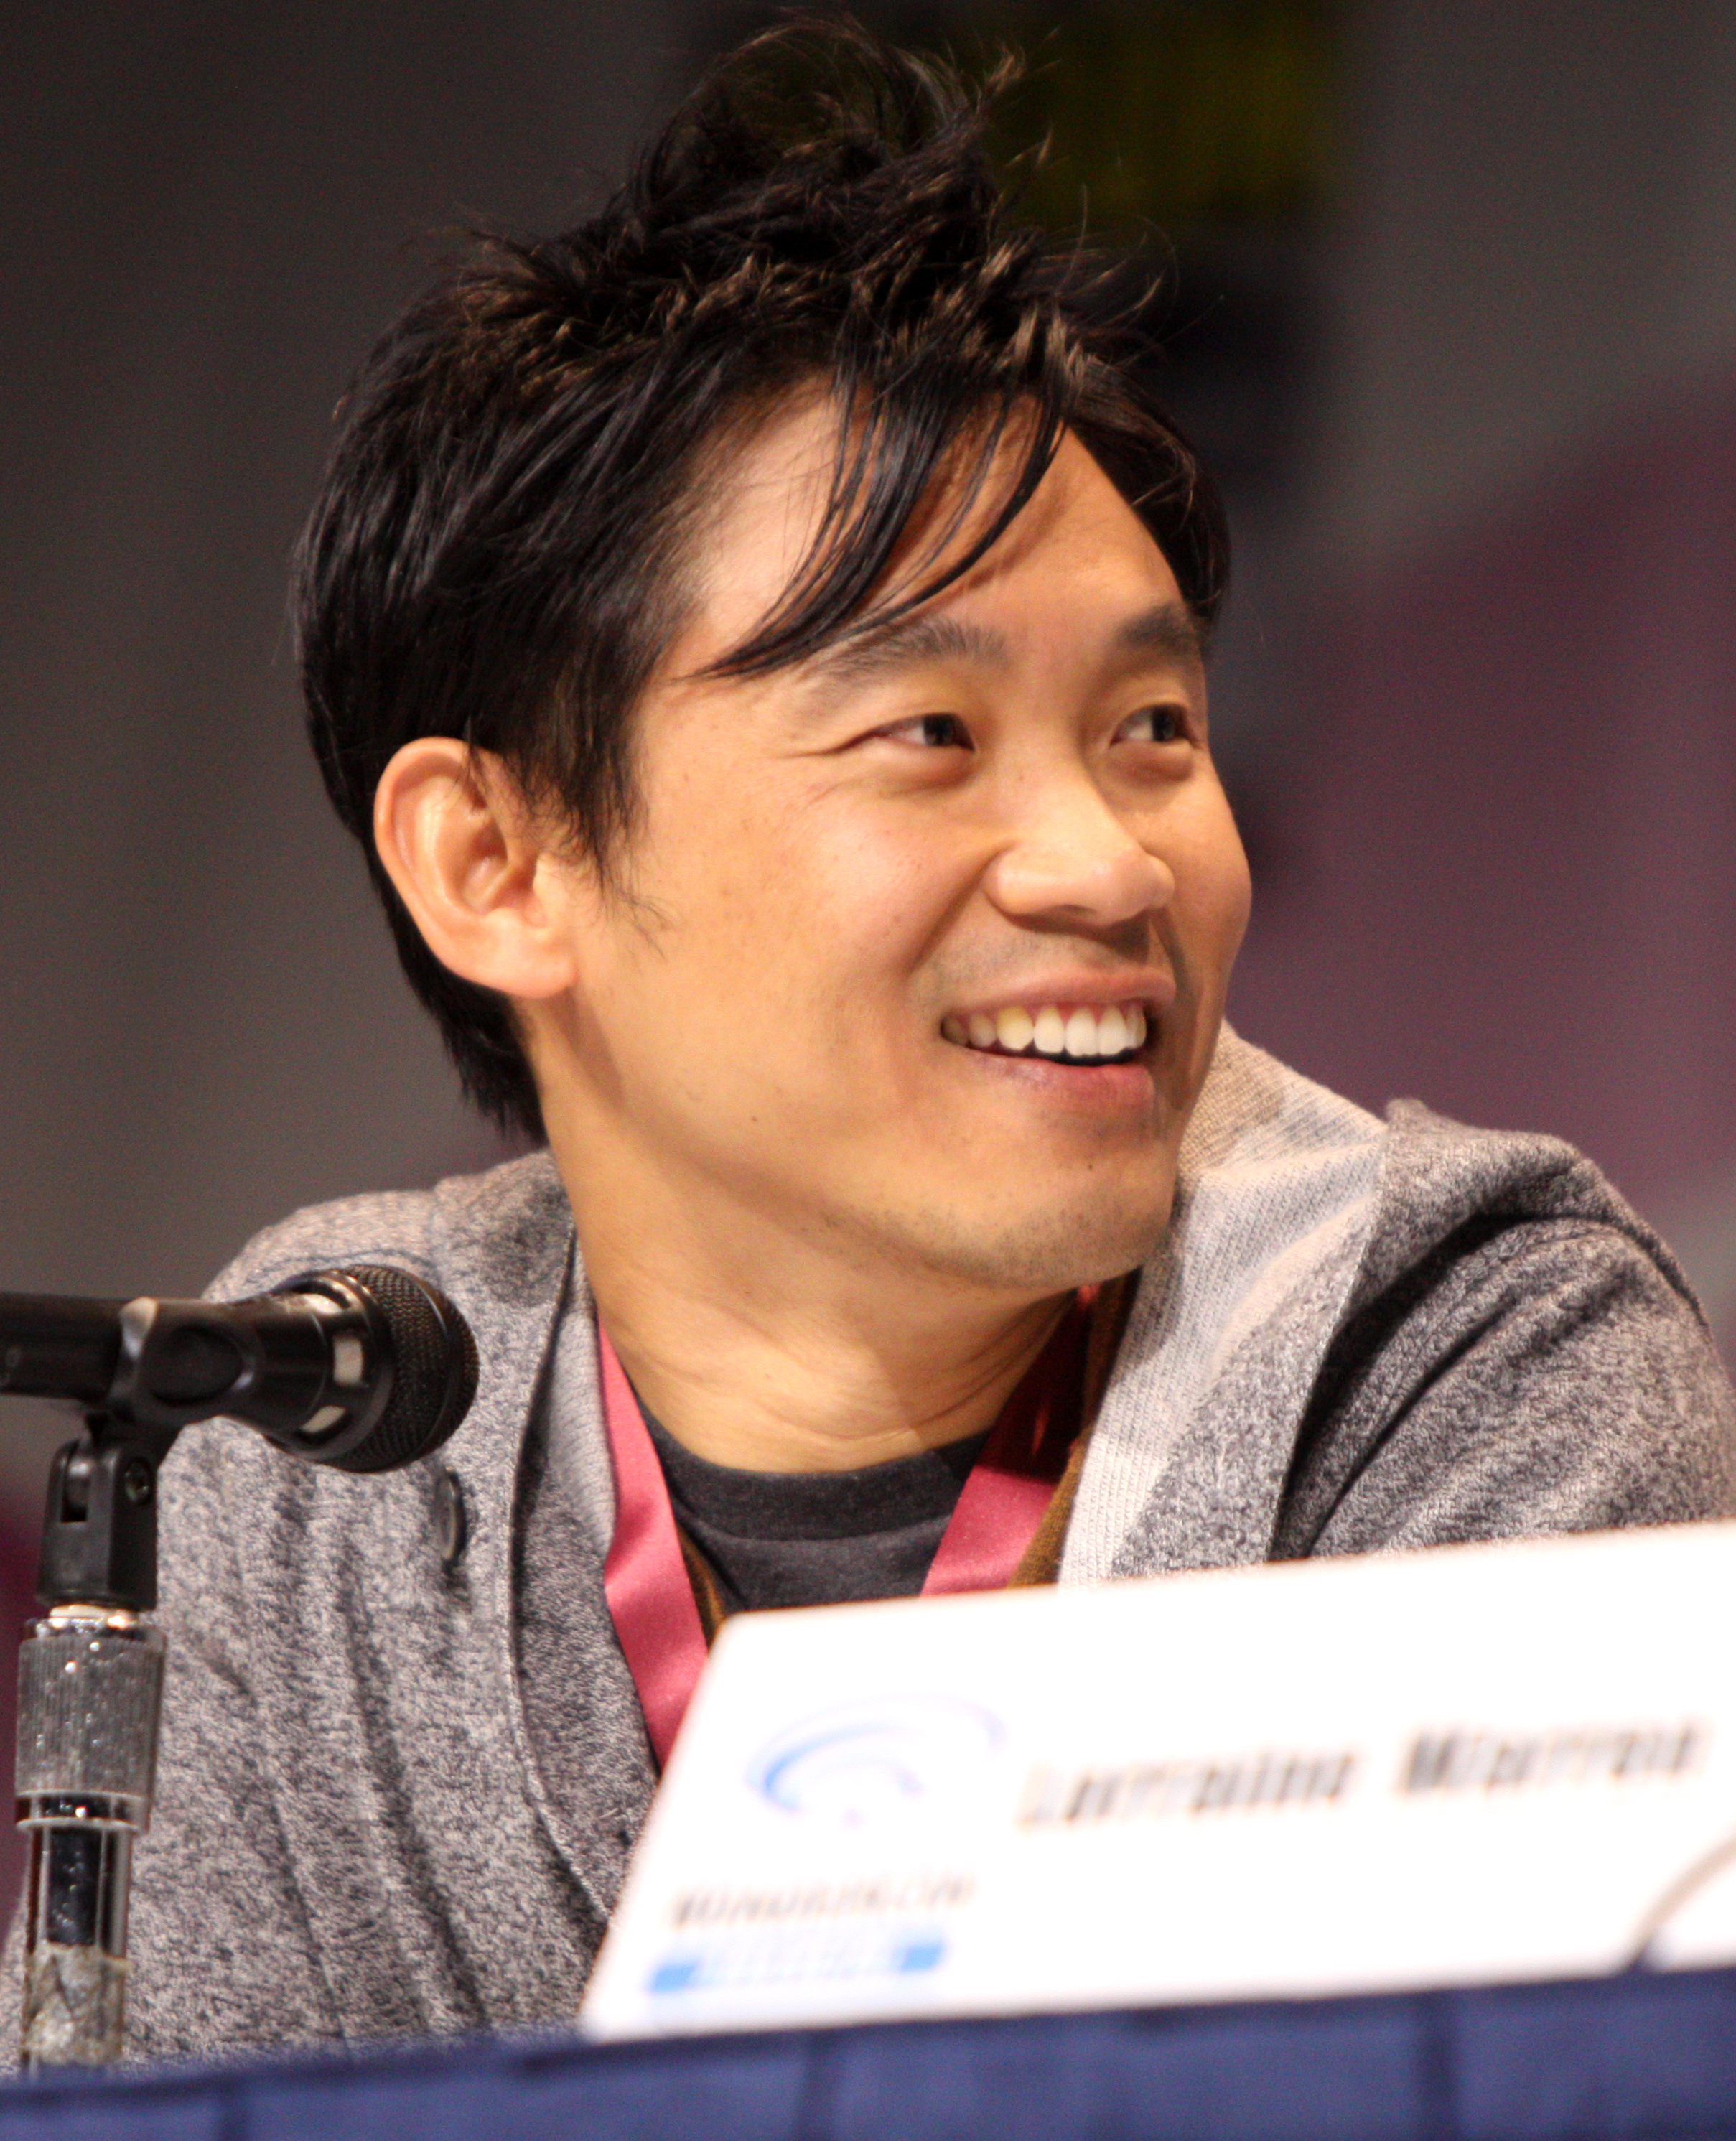 James Wan earned a  million dollar salary, leaving the net worth at 50 million in 2017